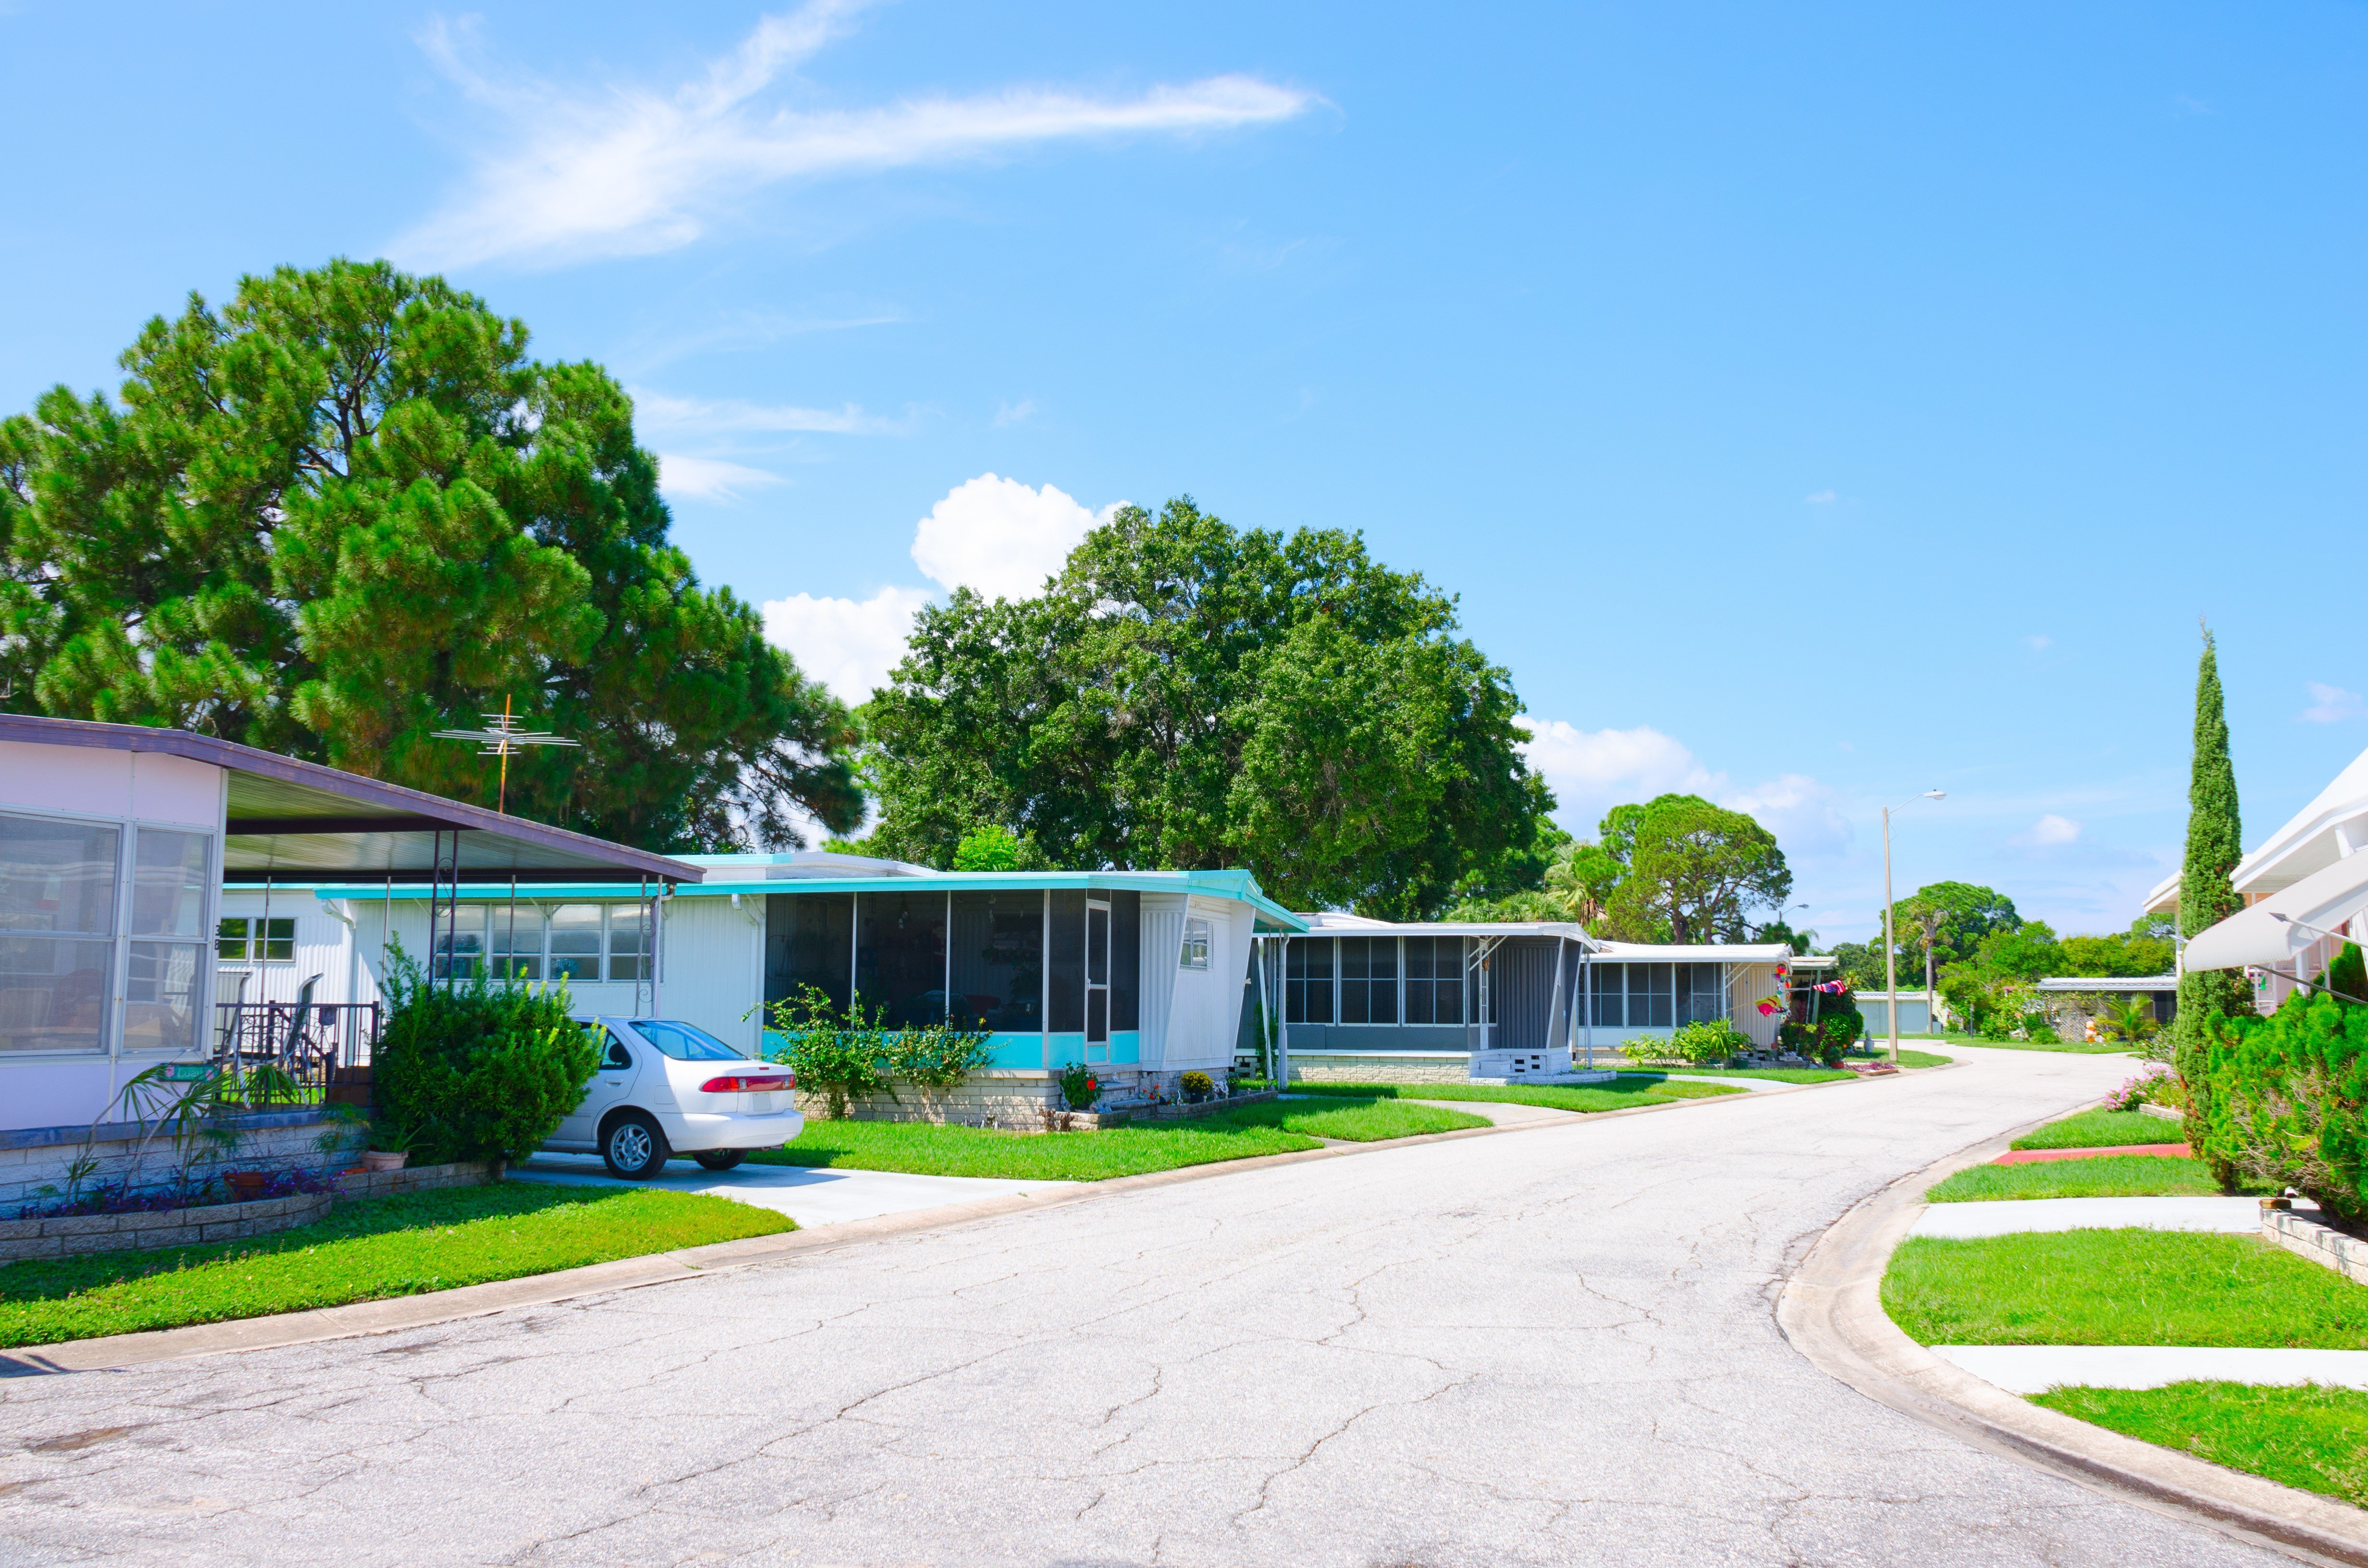 There are plenty of well maintained mobile home communities in the San Antonio area.